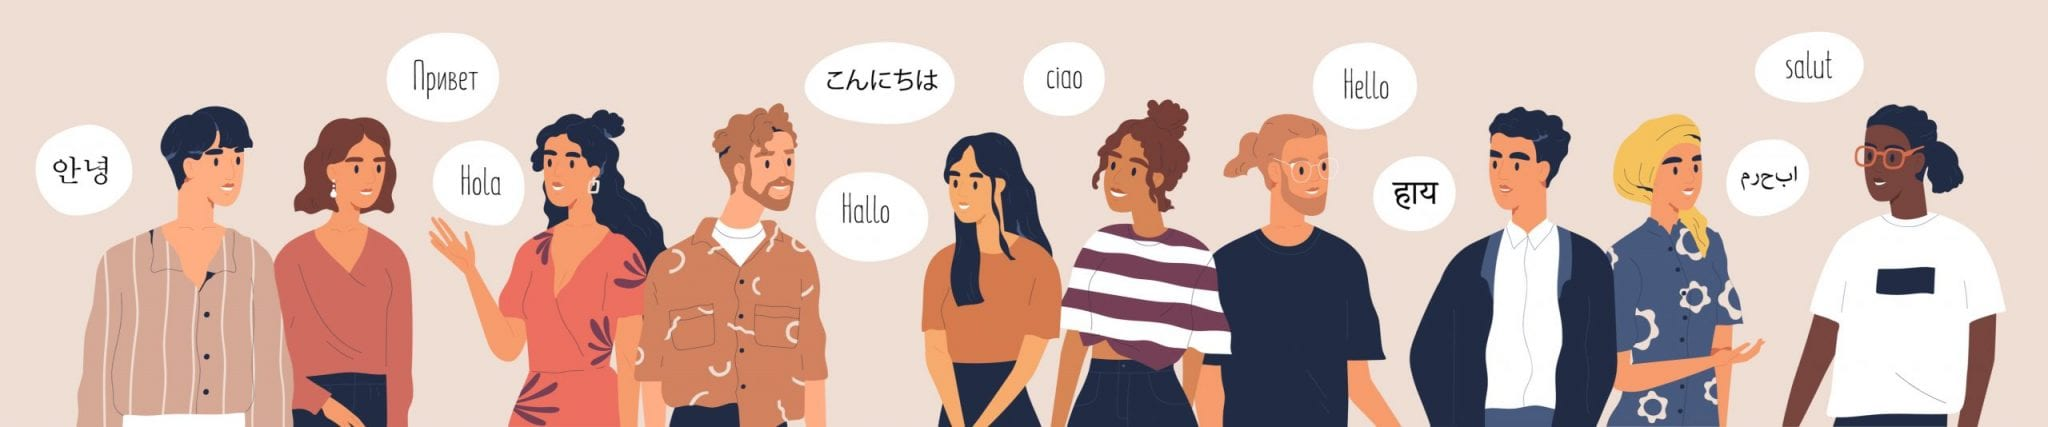 People Saying Hello in Different Languages.